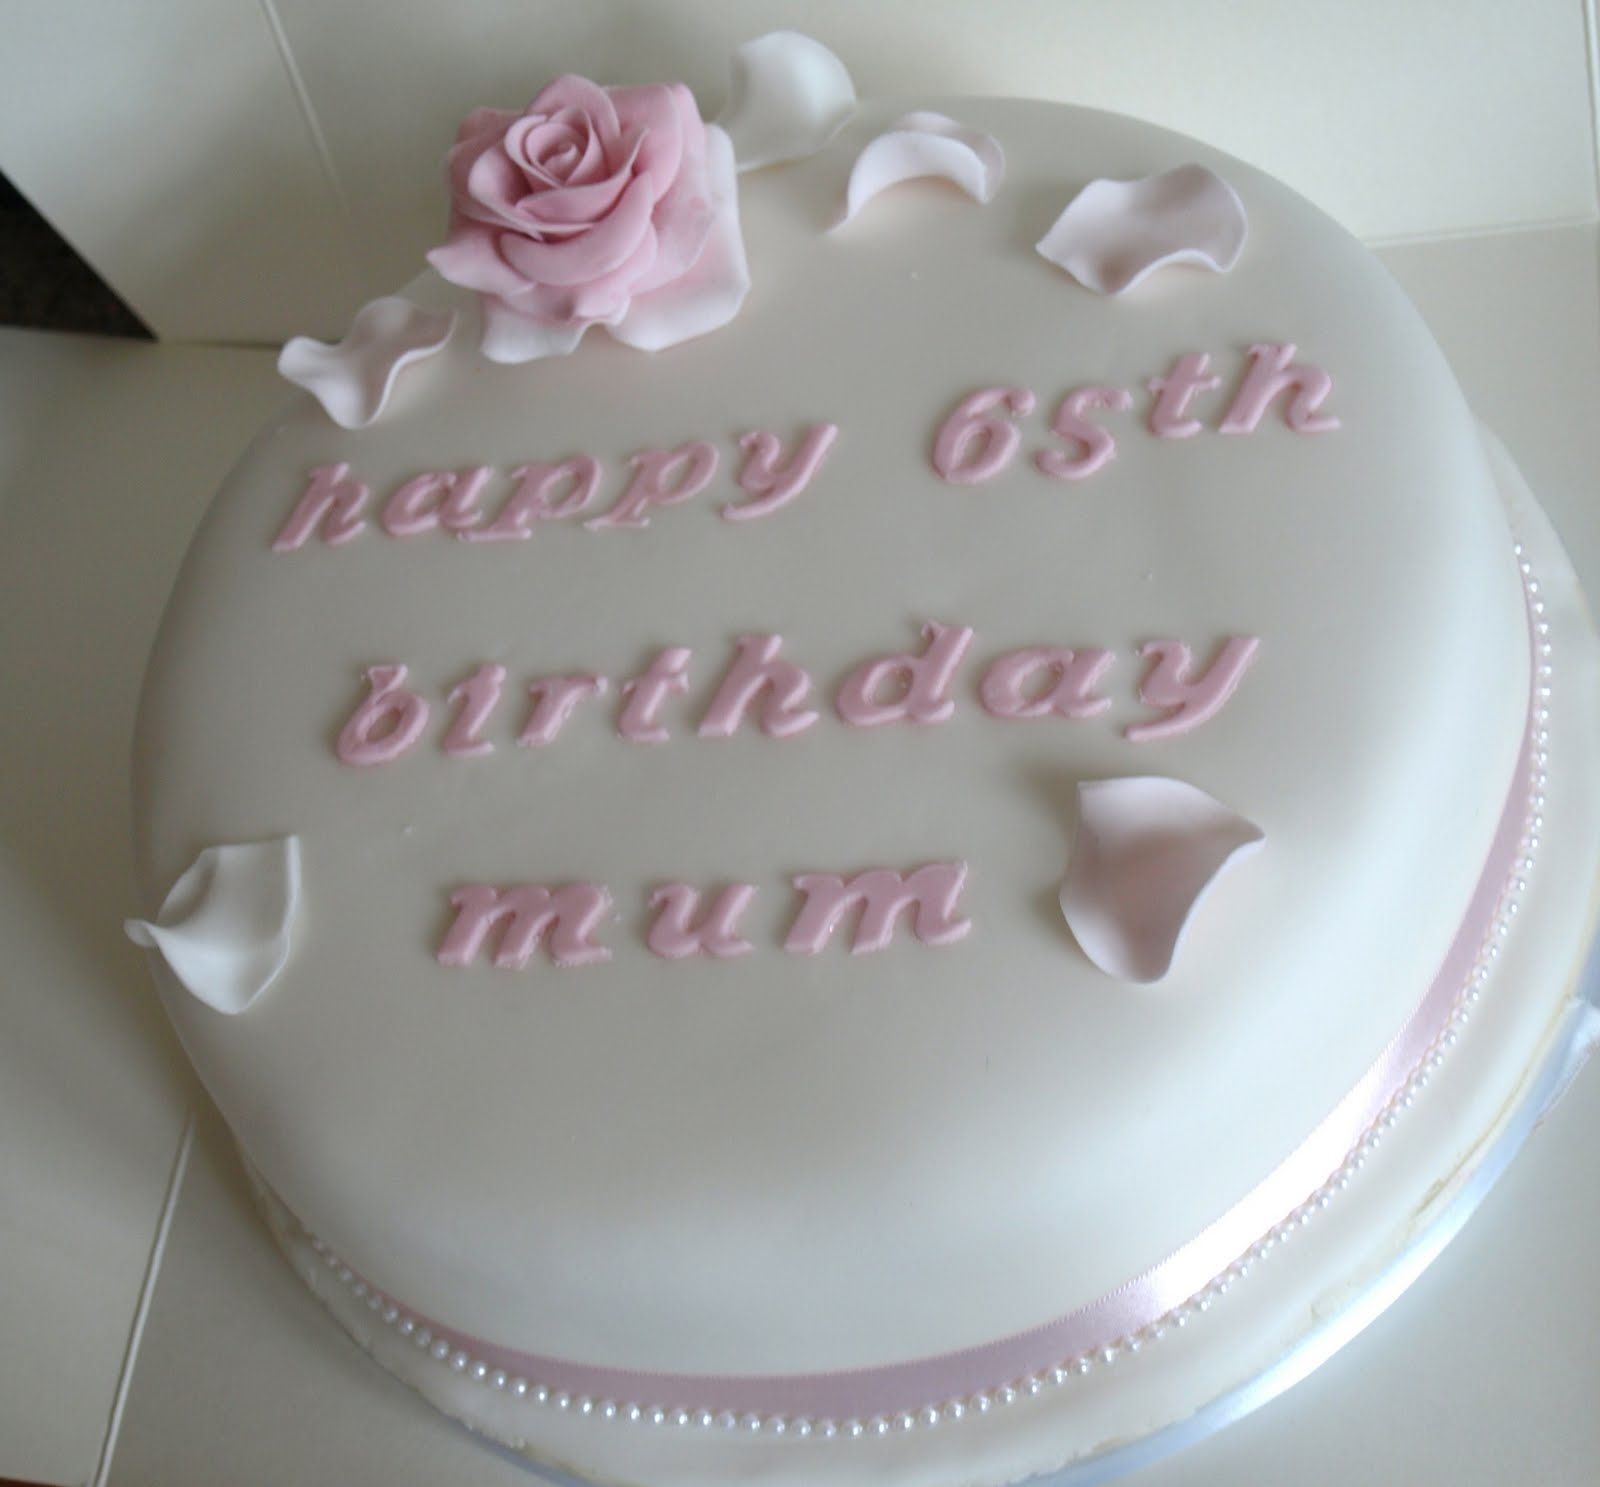 Brilliant Elegant Birthday Cakes For Women Simple And Elegant 65Th Funny Birthday Cards Online Bapapcheapnameinfo